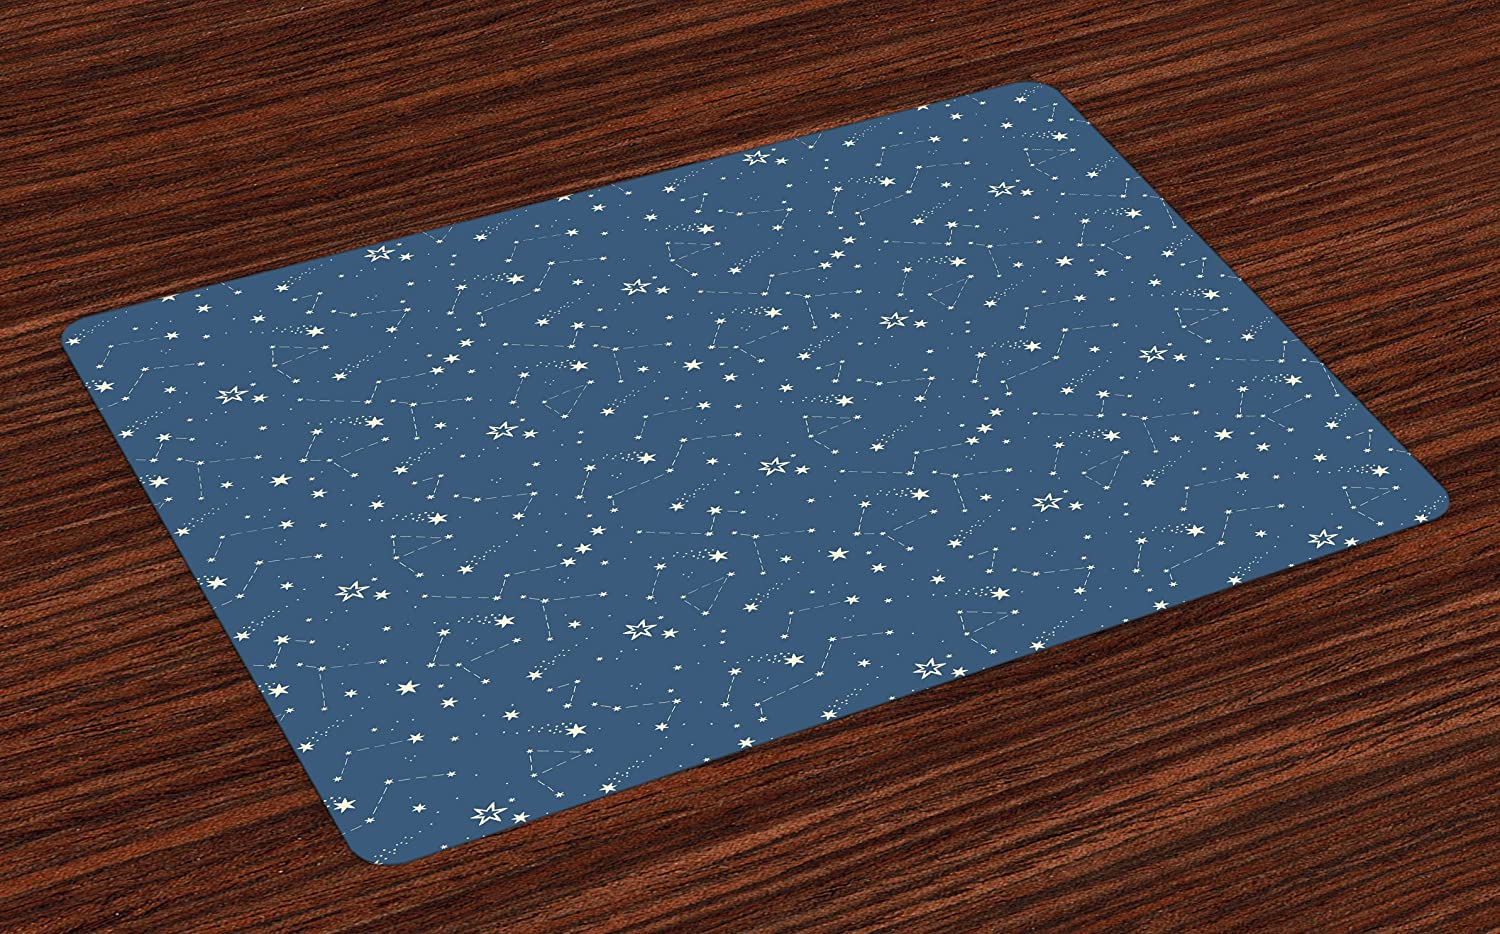 Amazon.com: Lunarable Constellation Place Mats Set of 4, Space ...